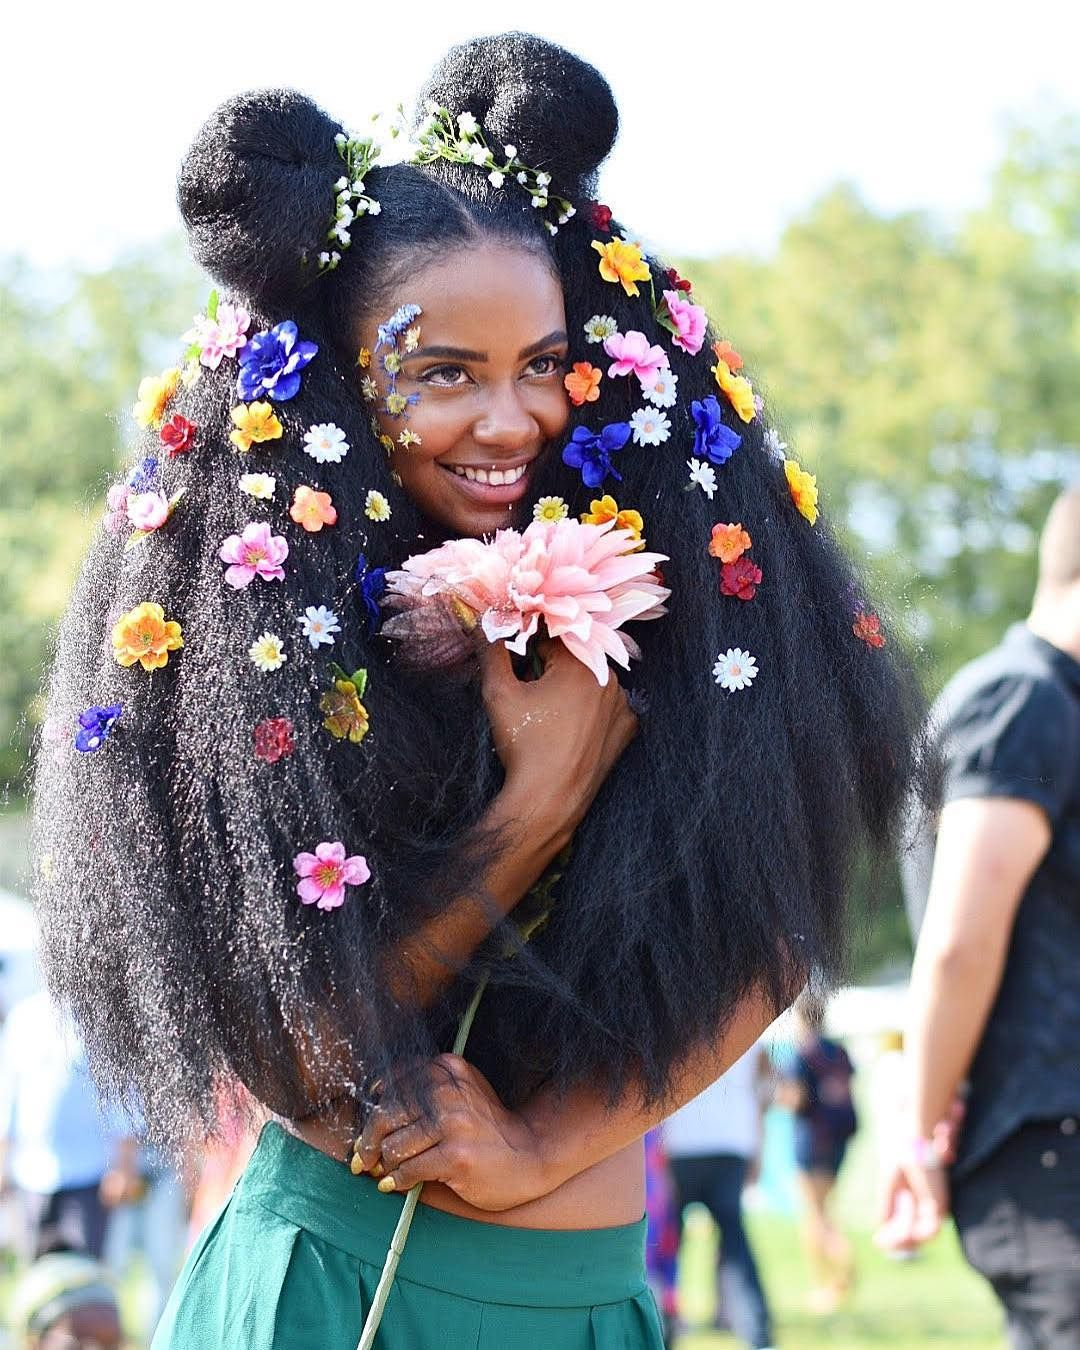 Natural Black Girl Fashion: Flowers In Her Hair (With Images)